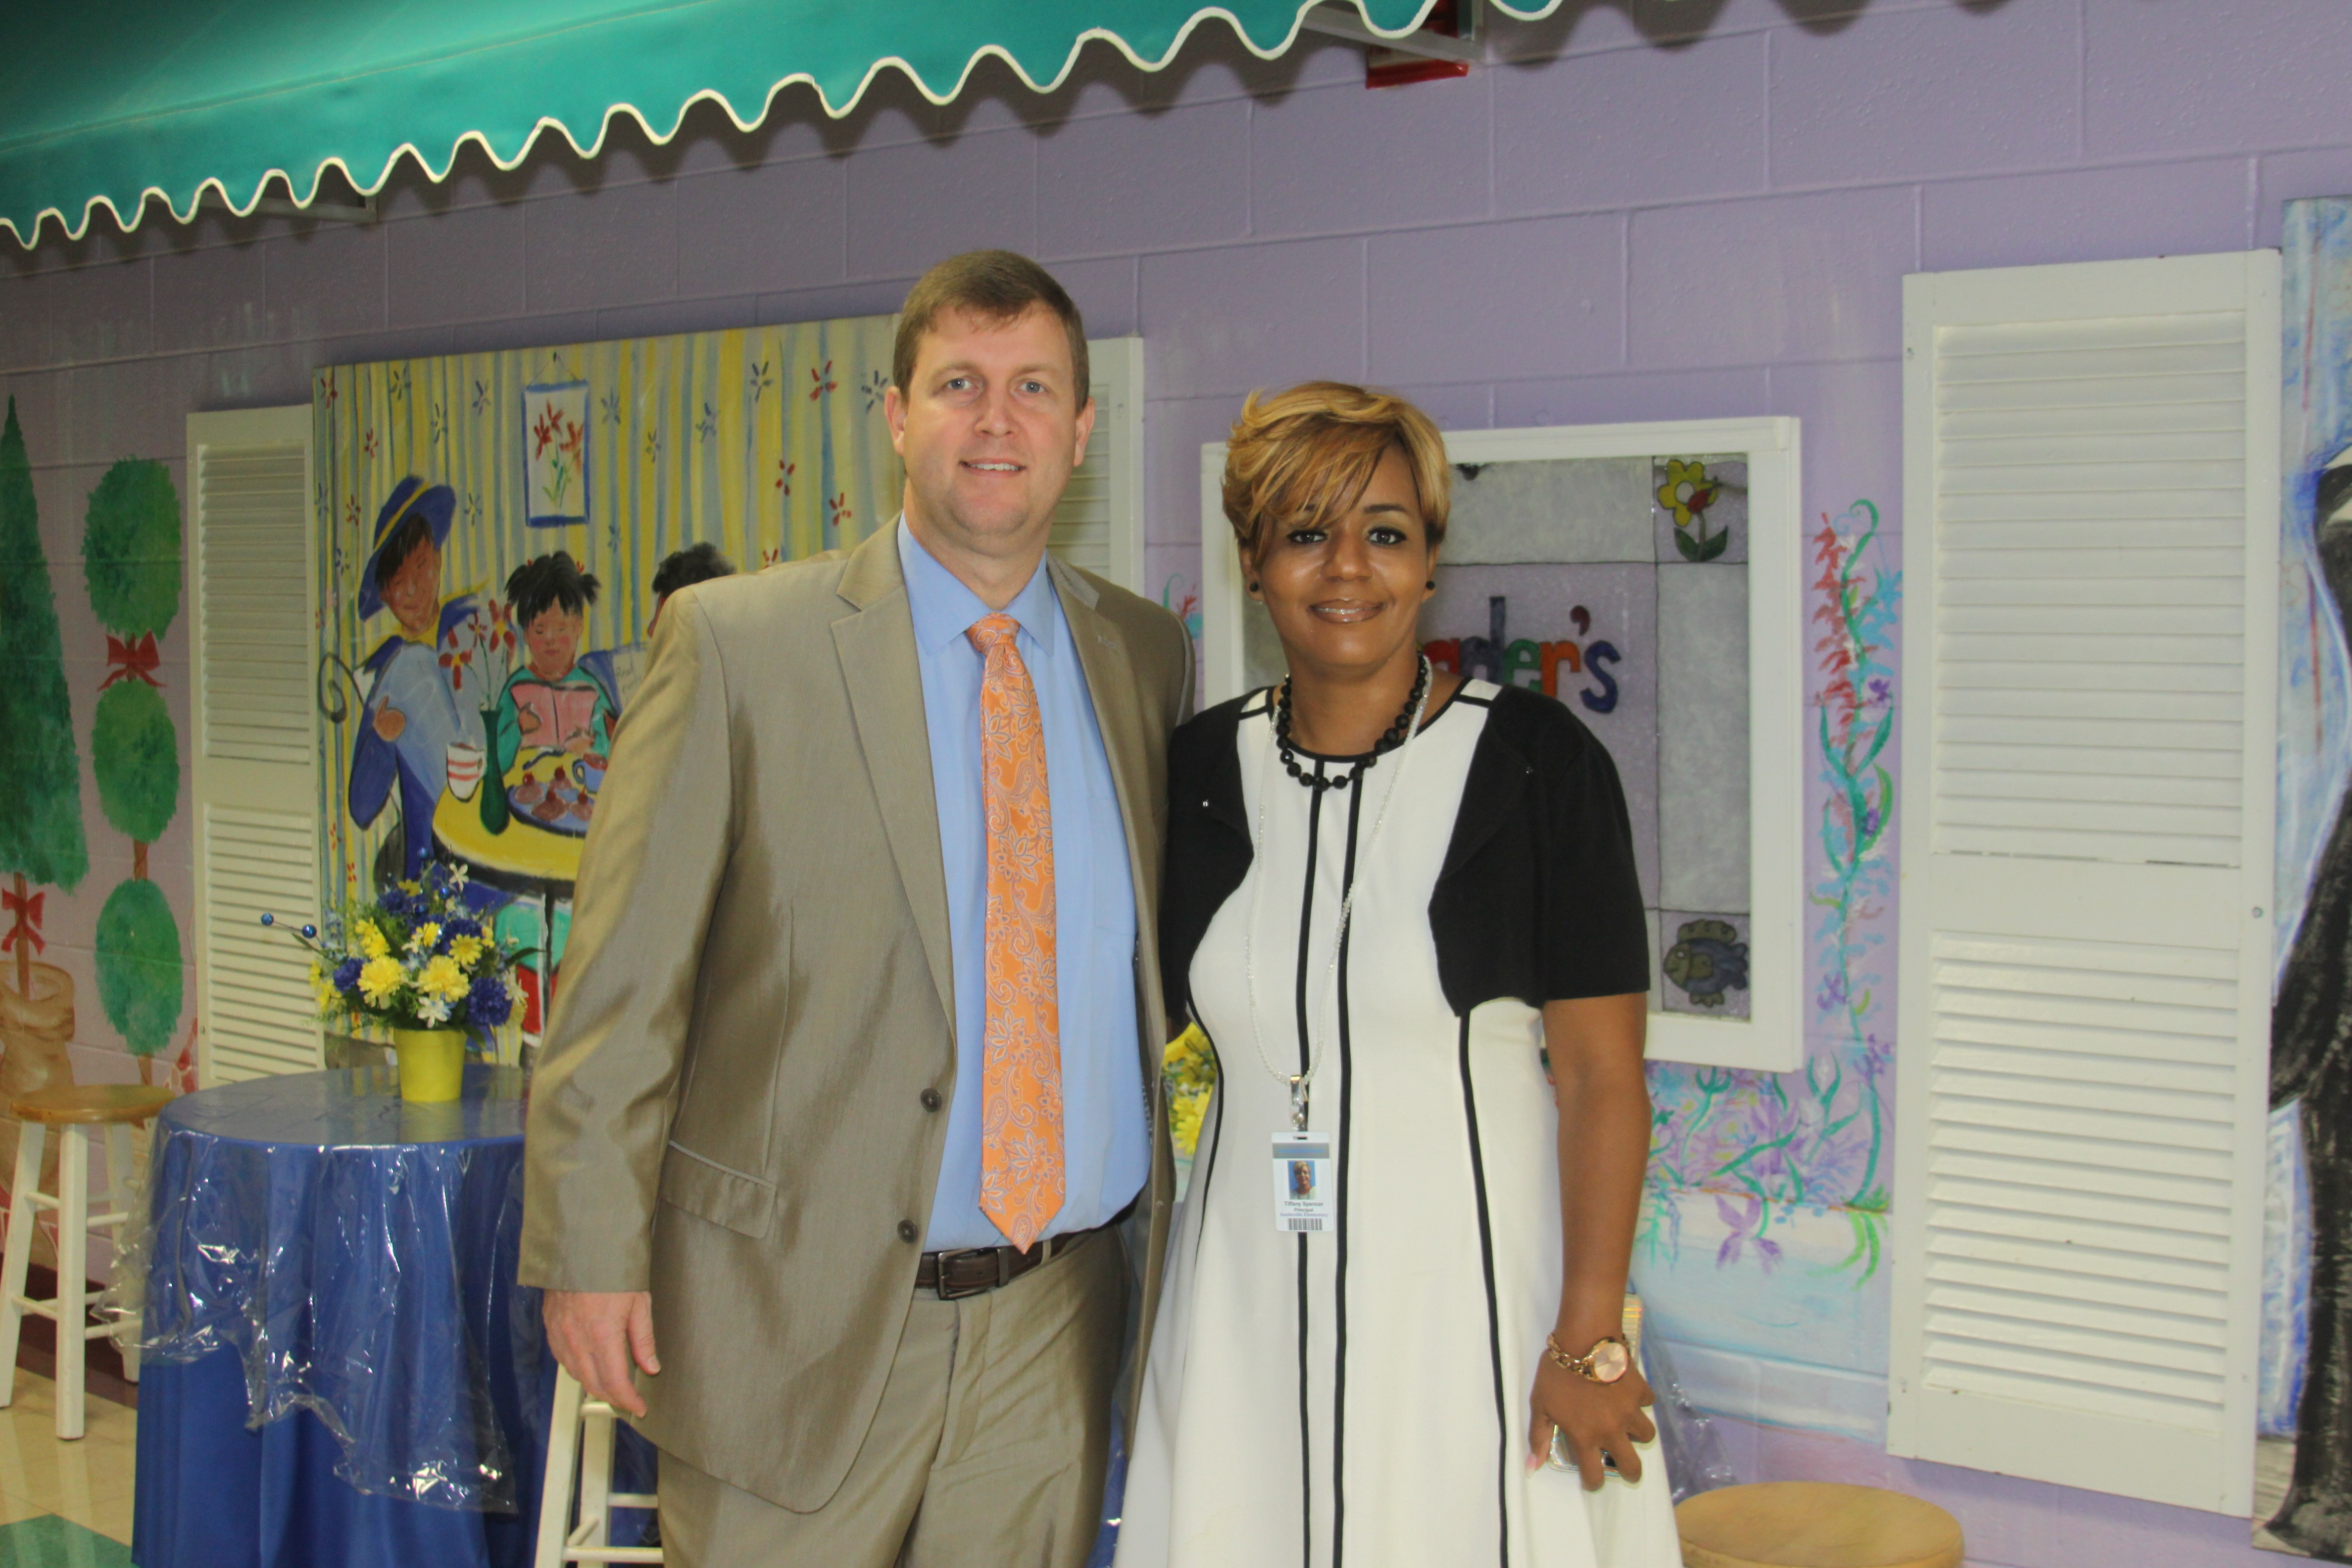 Principal Ms. Spencer with Dr. Douglass